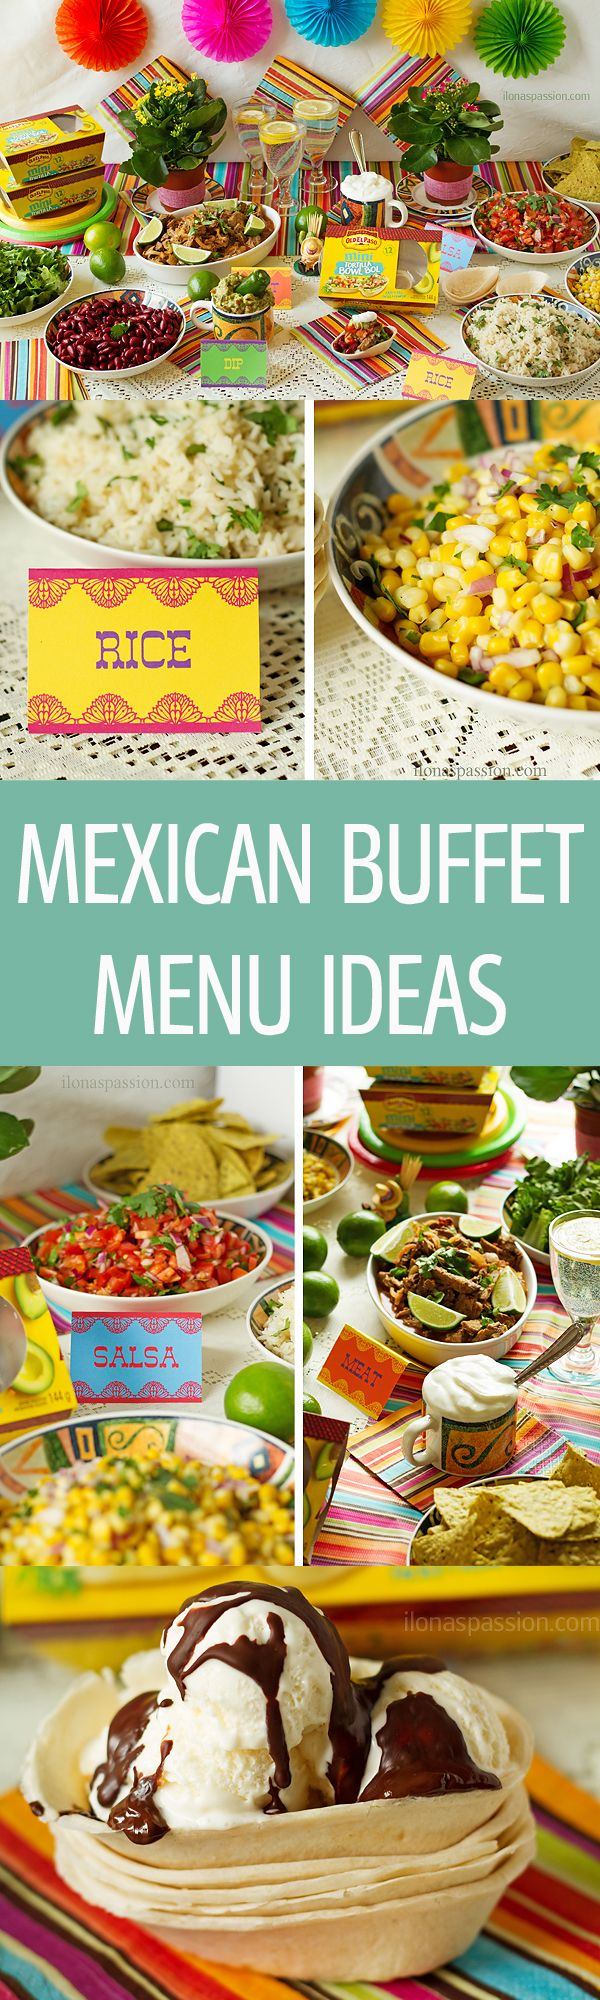 Mexican Buffet Menu Ideas - full Mexican buffet menu ideas with recipes like barbacoa, lime cilantro rice, avocado dip, beans, tortilla bowls, corn and homemade salsa. Free Mexican printable table tents included! by ilonaspassion.com I @ilonaspassion #CreateYourBowl #ad: